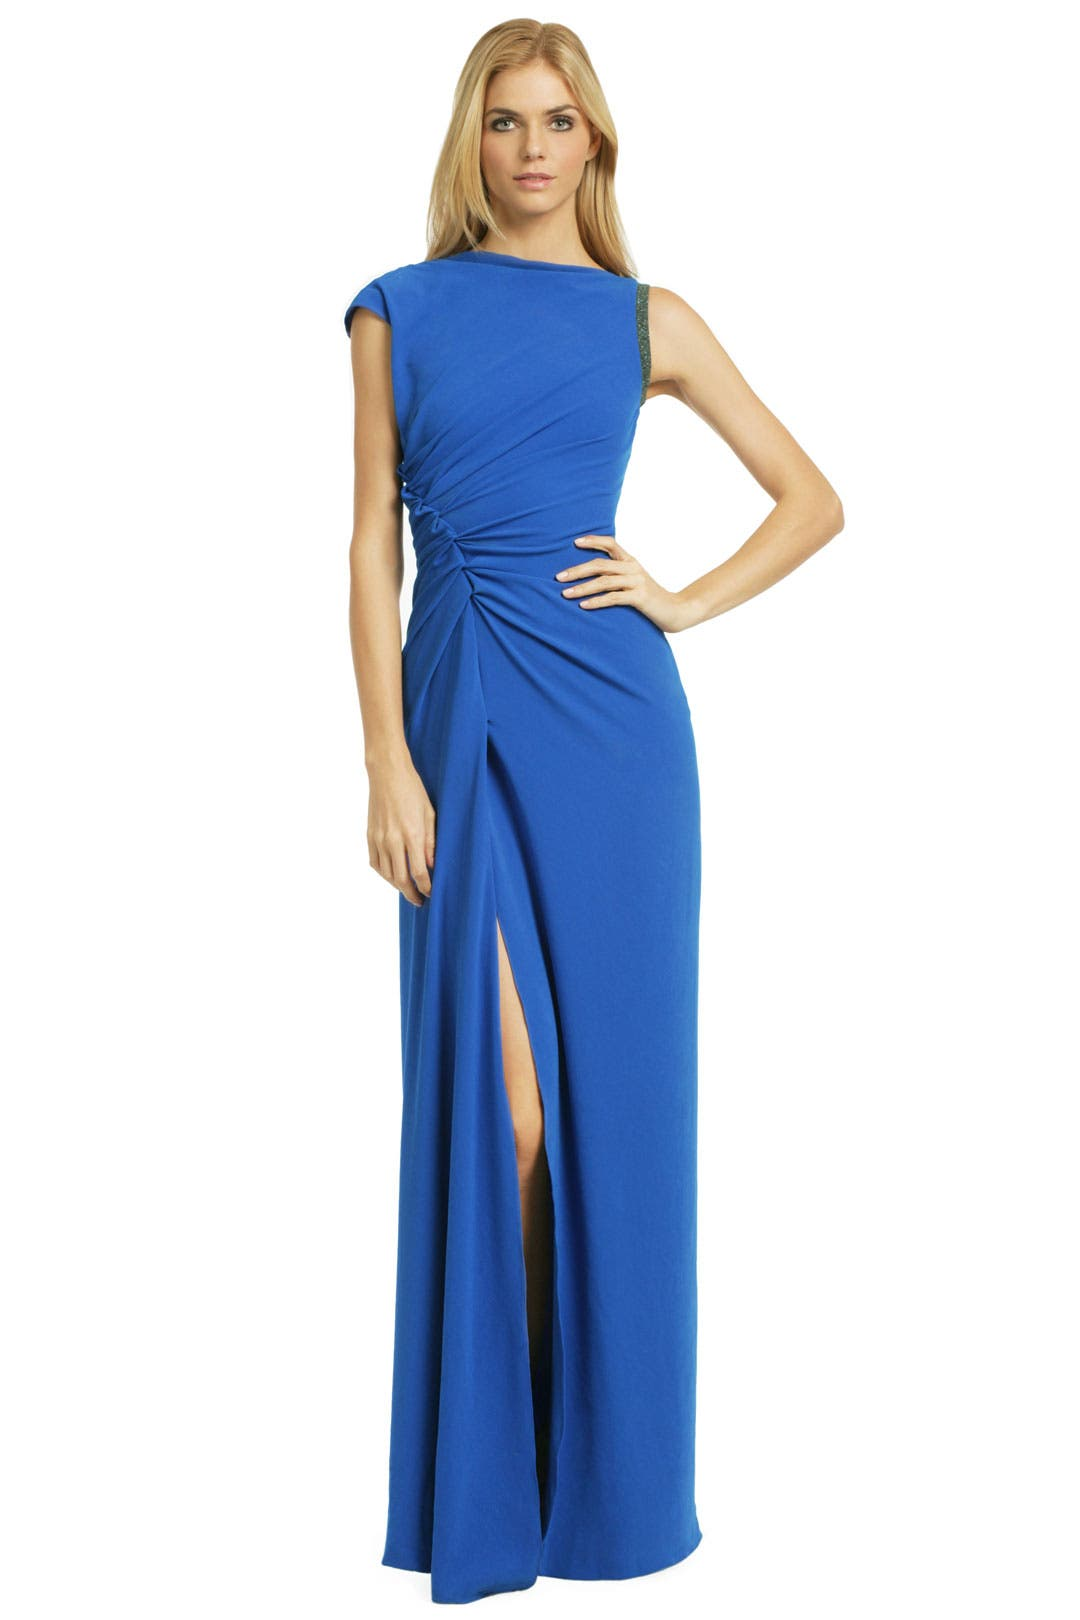 In The Deep End Gown by Halston Heritage